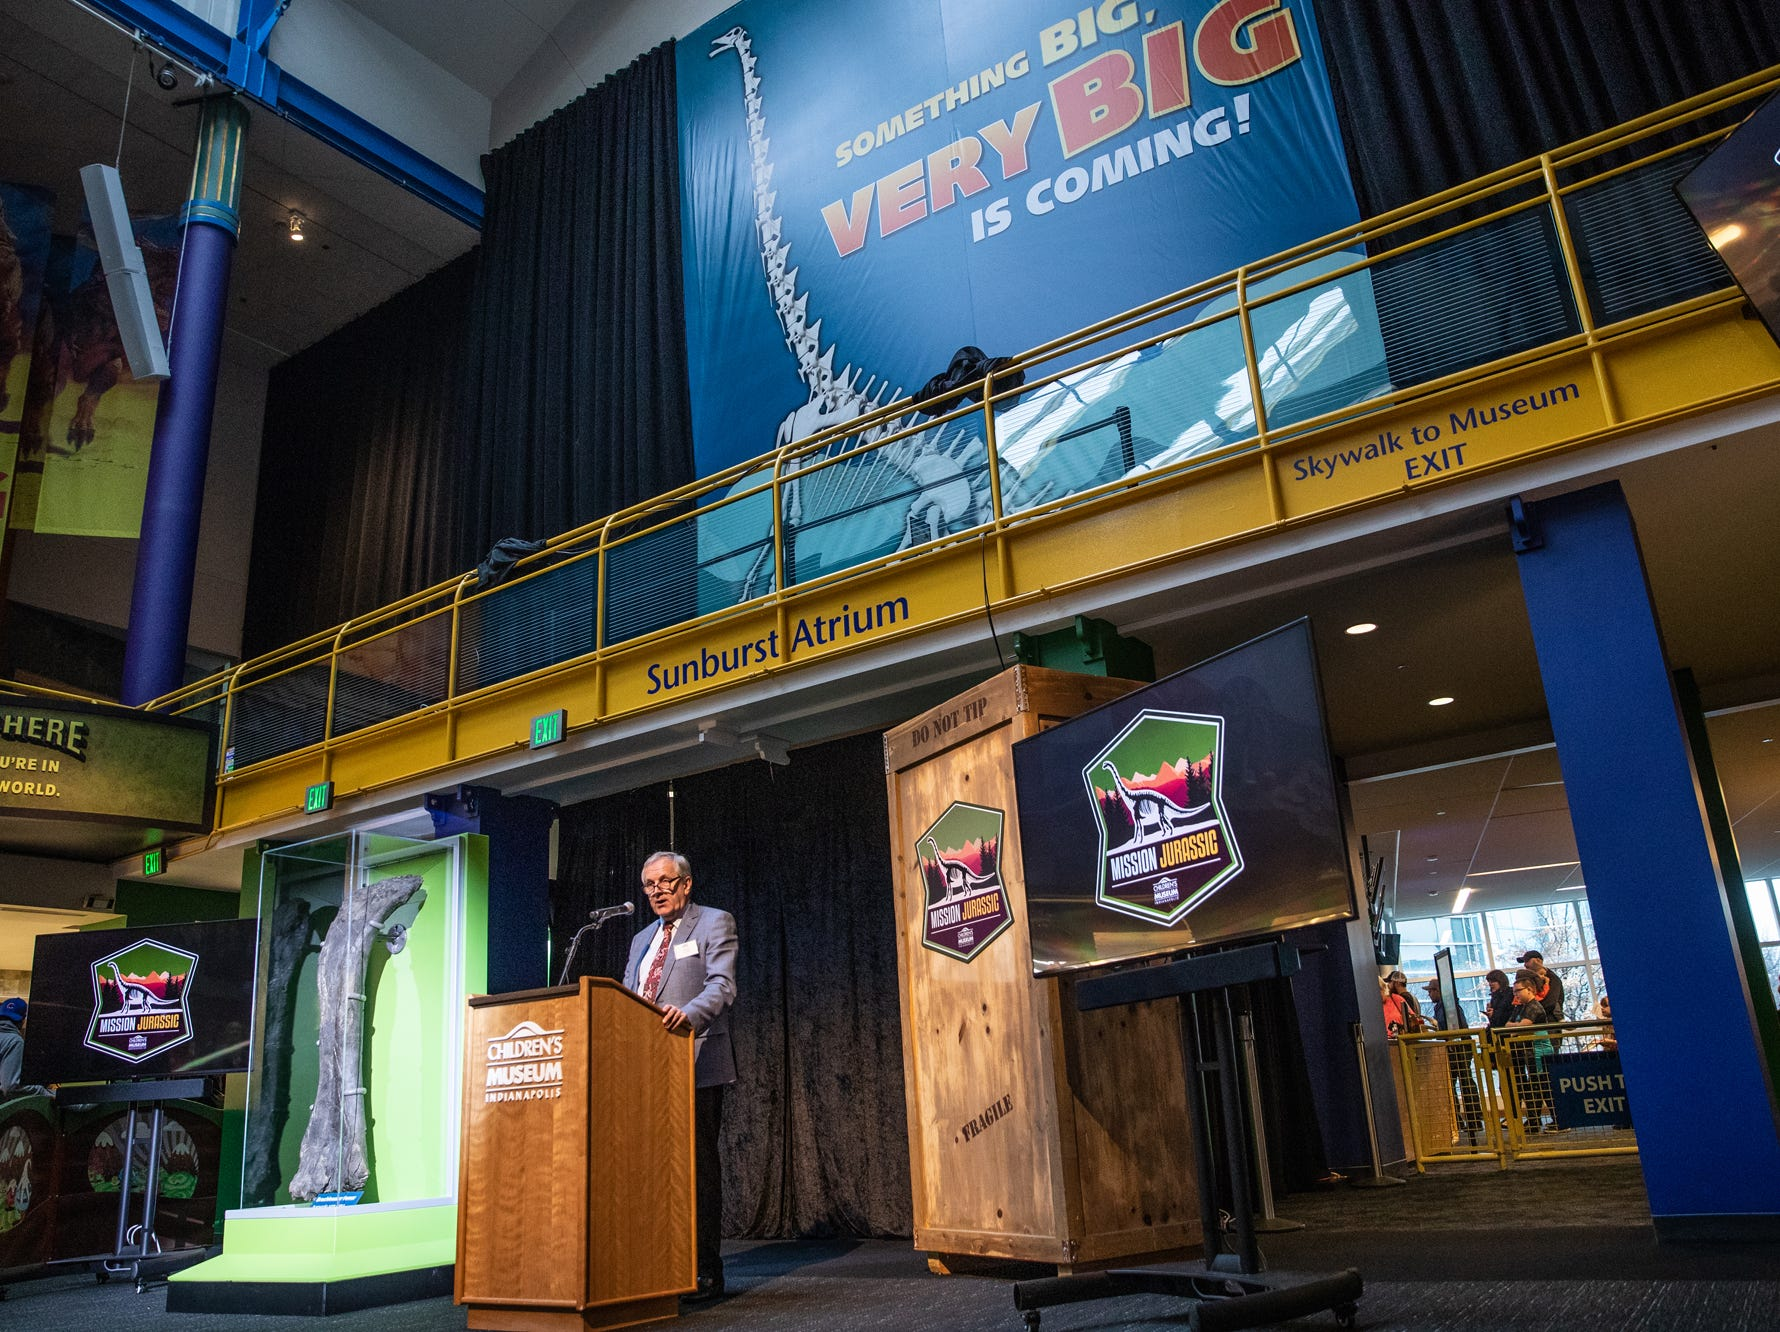 Professor Richard Herrington, the acting director of science at The Natural History Museum in London, speaks about a newly discovered femur of a Brachiosaur during a press conference at the Children's Museum of Indianapolis on Monday, March 25, 2019. The Children's Museum of Indianapolis, who will serve as Mission Jurassic leader, alongside The Natural History Museum, Naturalis Biodiversity Center and the University of Manchester, will work together to excavate the fossil-rich plot of land in northern Wyoming where the femur was found.